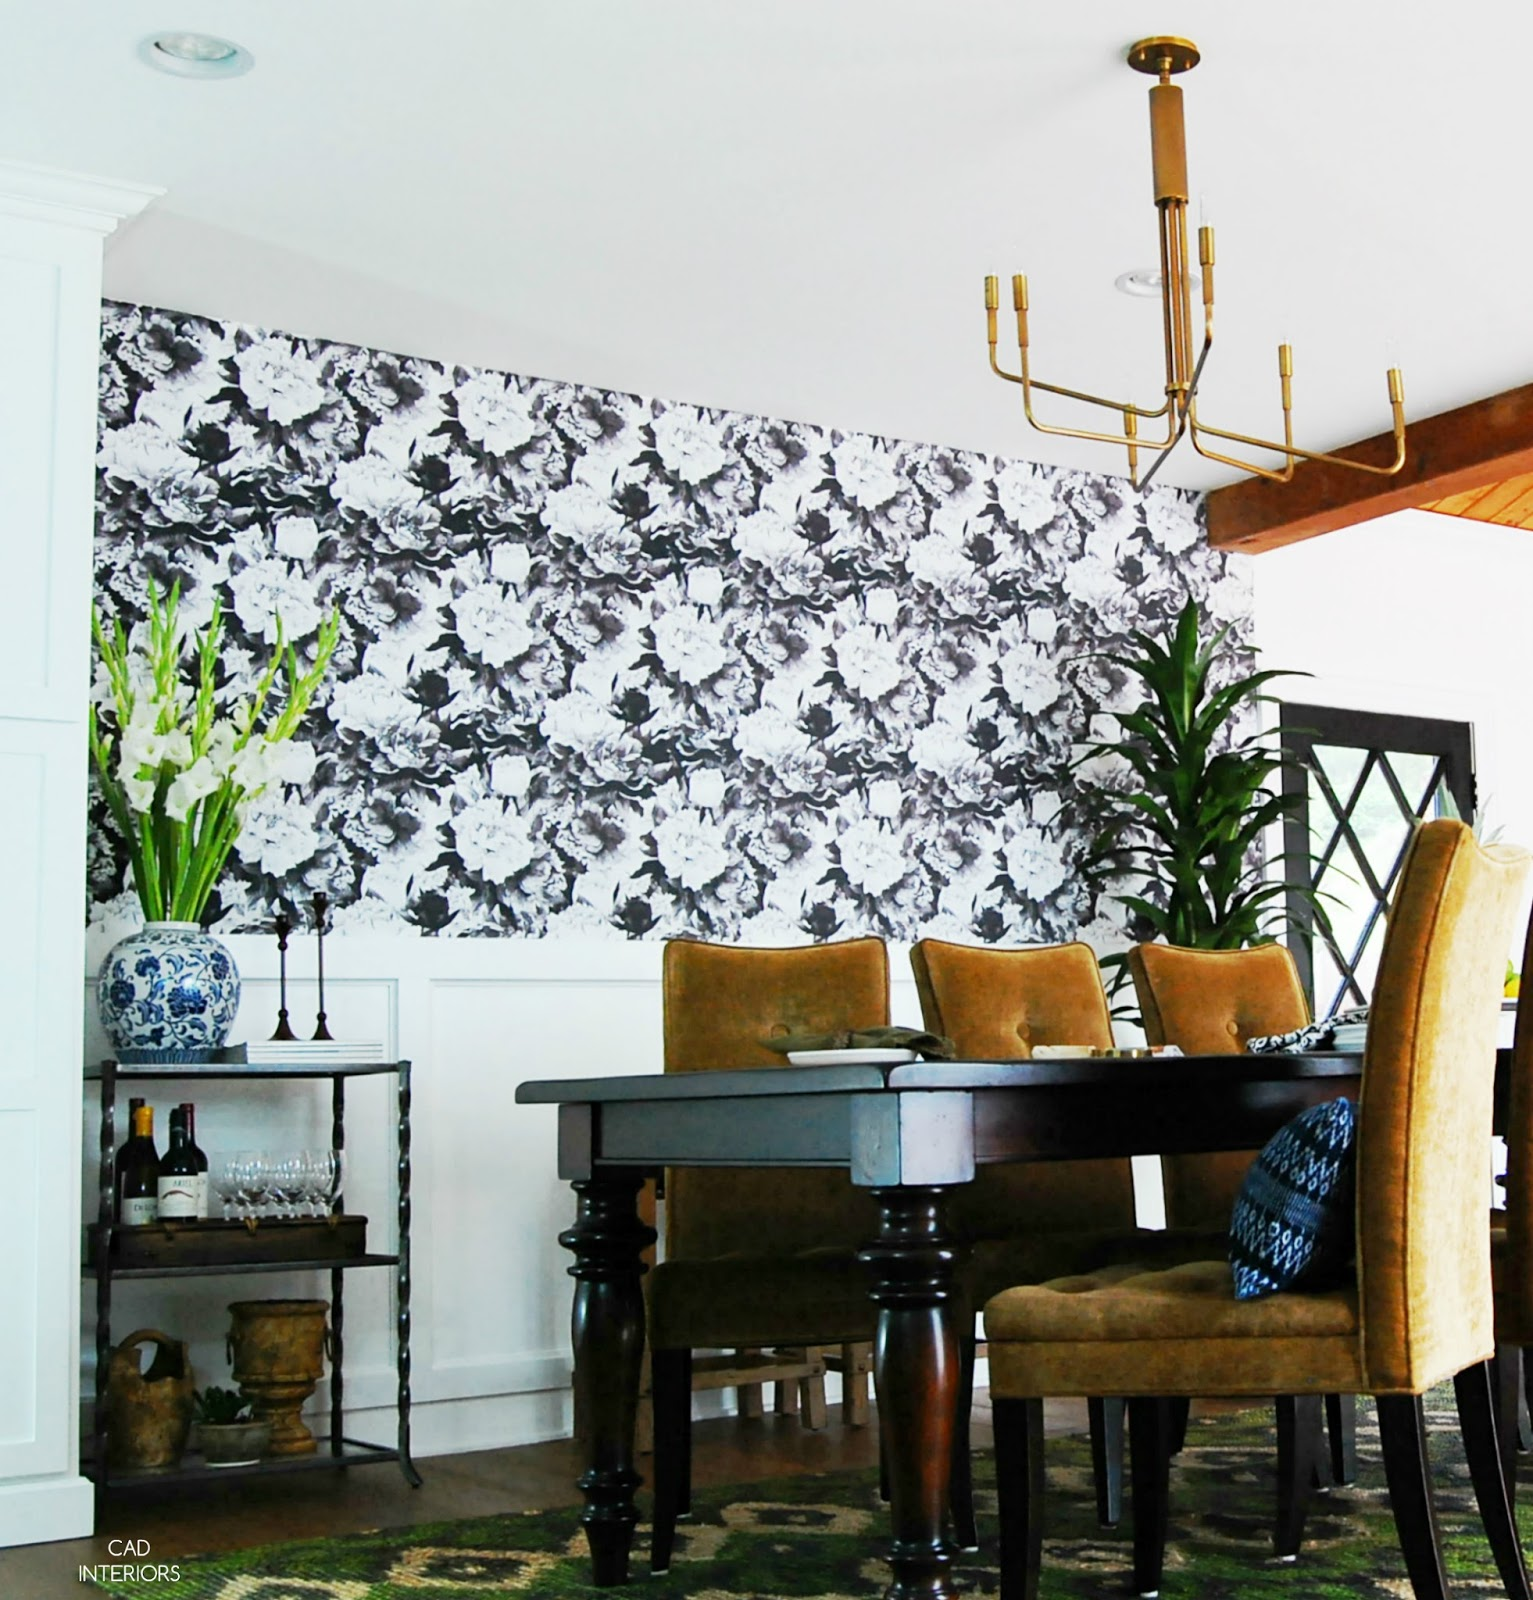 dining room makeover interior design mcm mid century modern transitional eclectic farmhouse